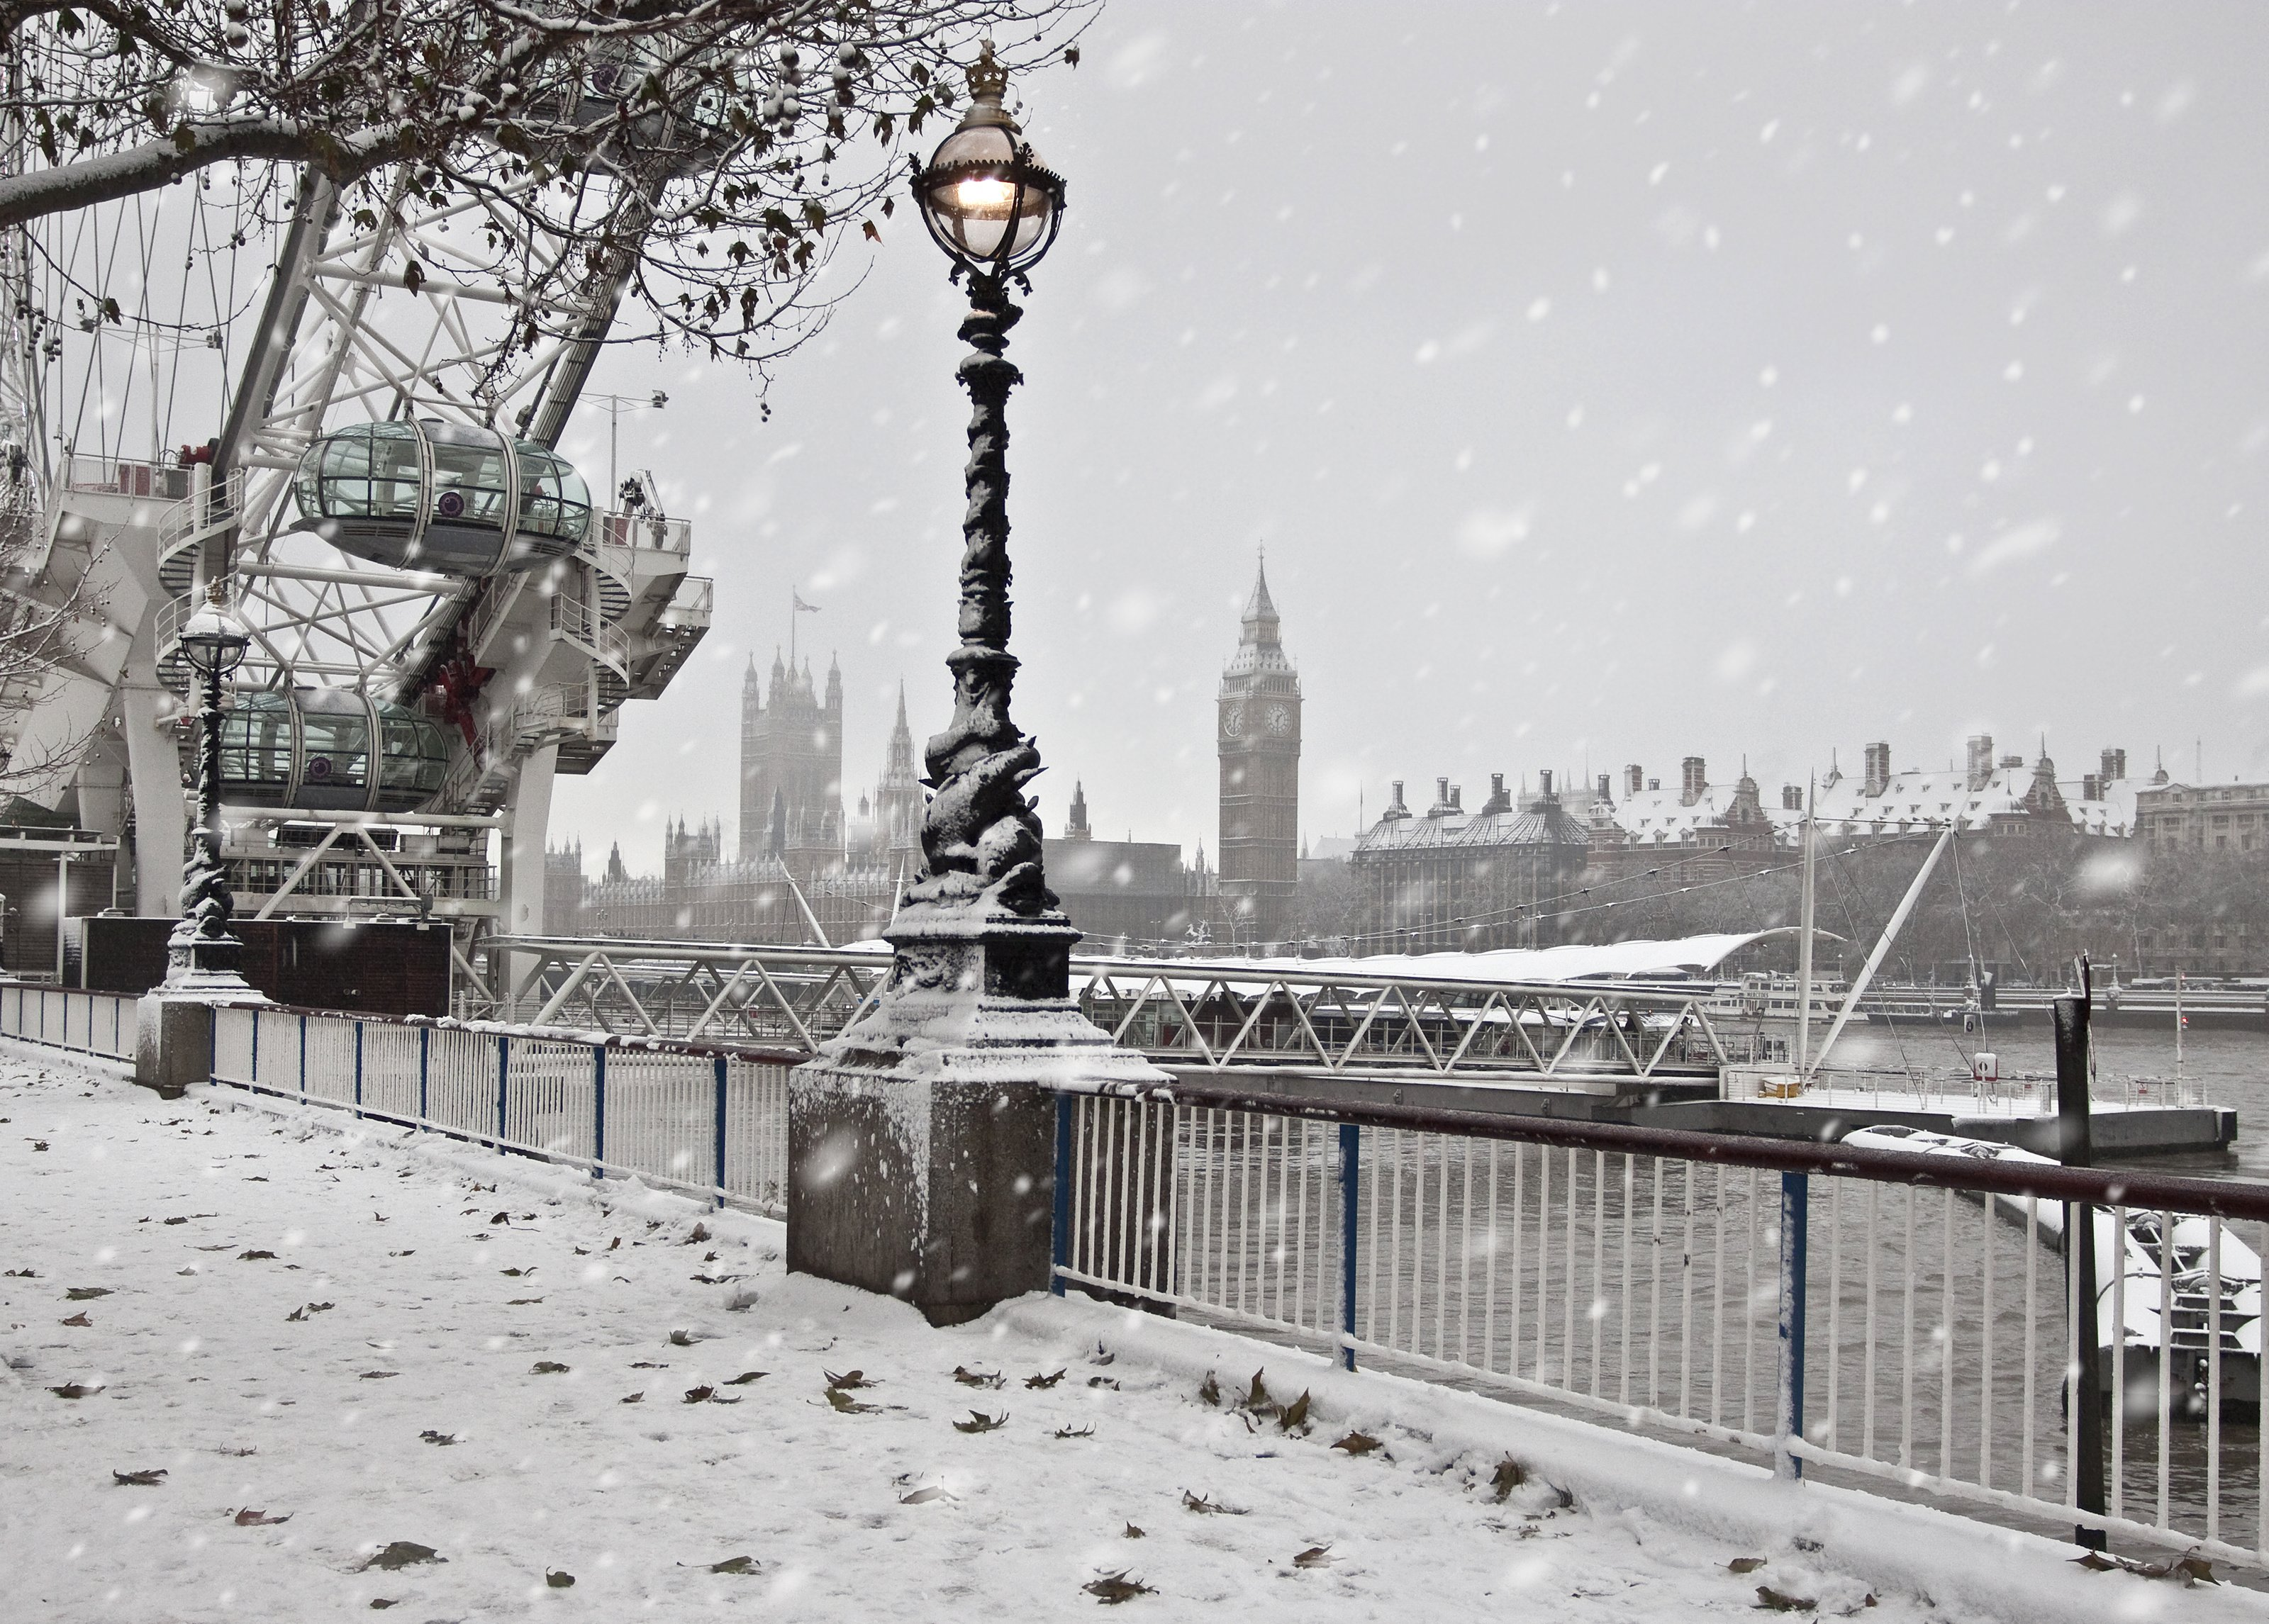 Magical Holiday Traditions In London!